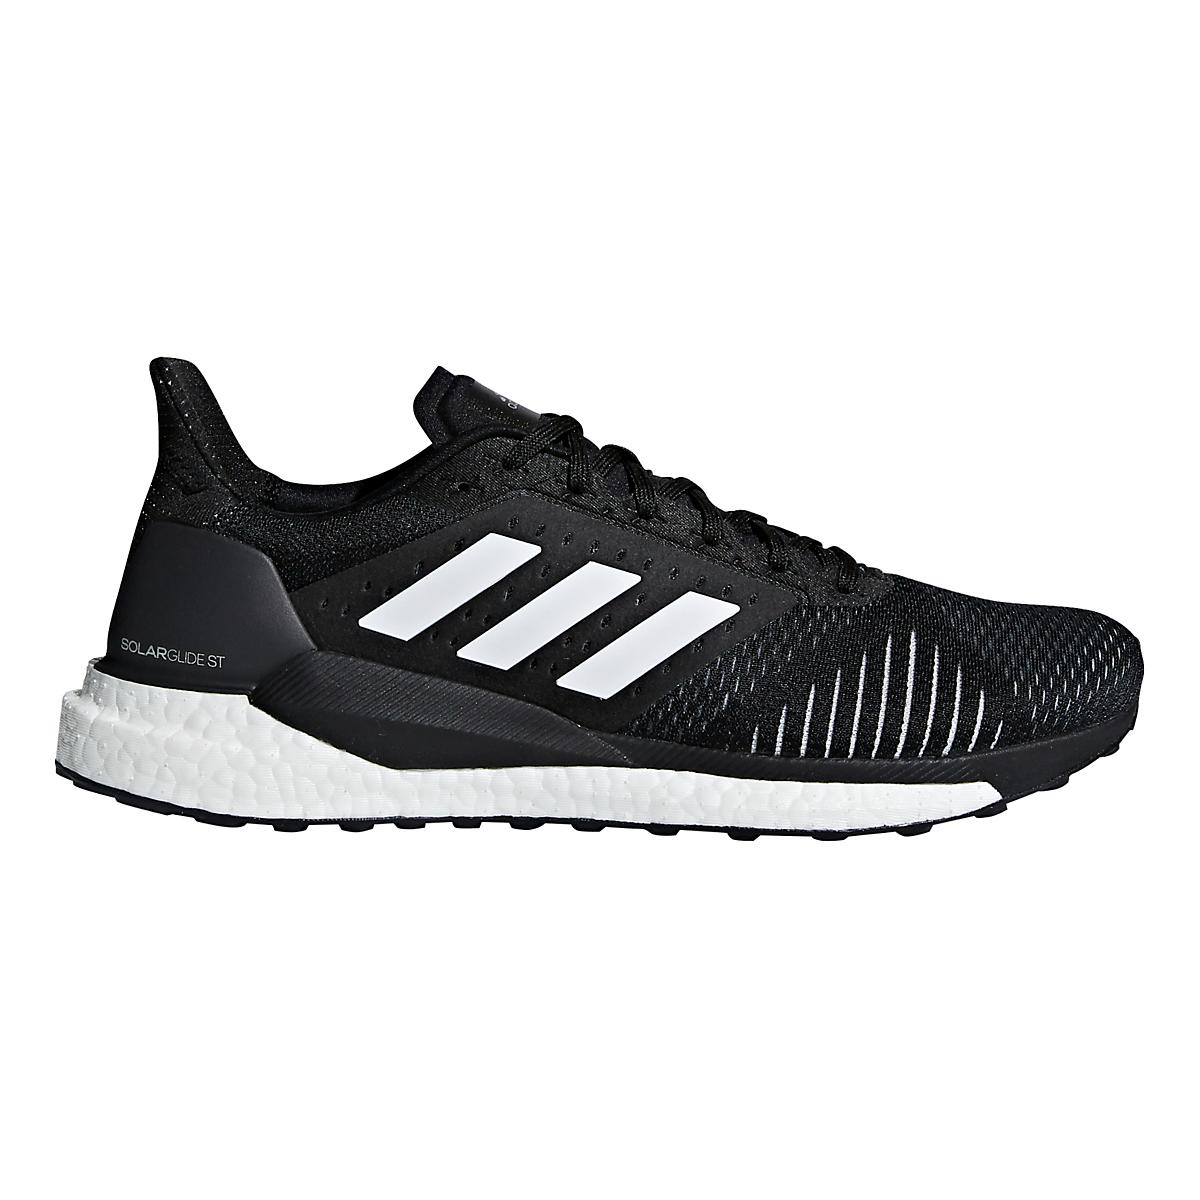 Adidas Solarglide ST Review